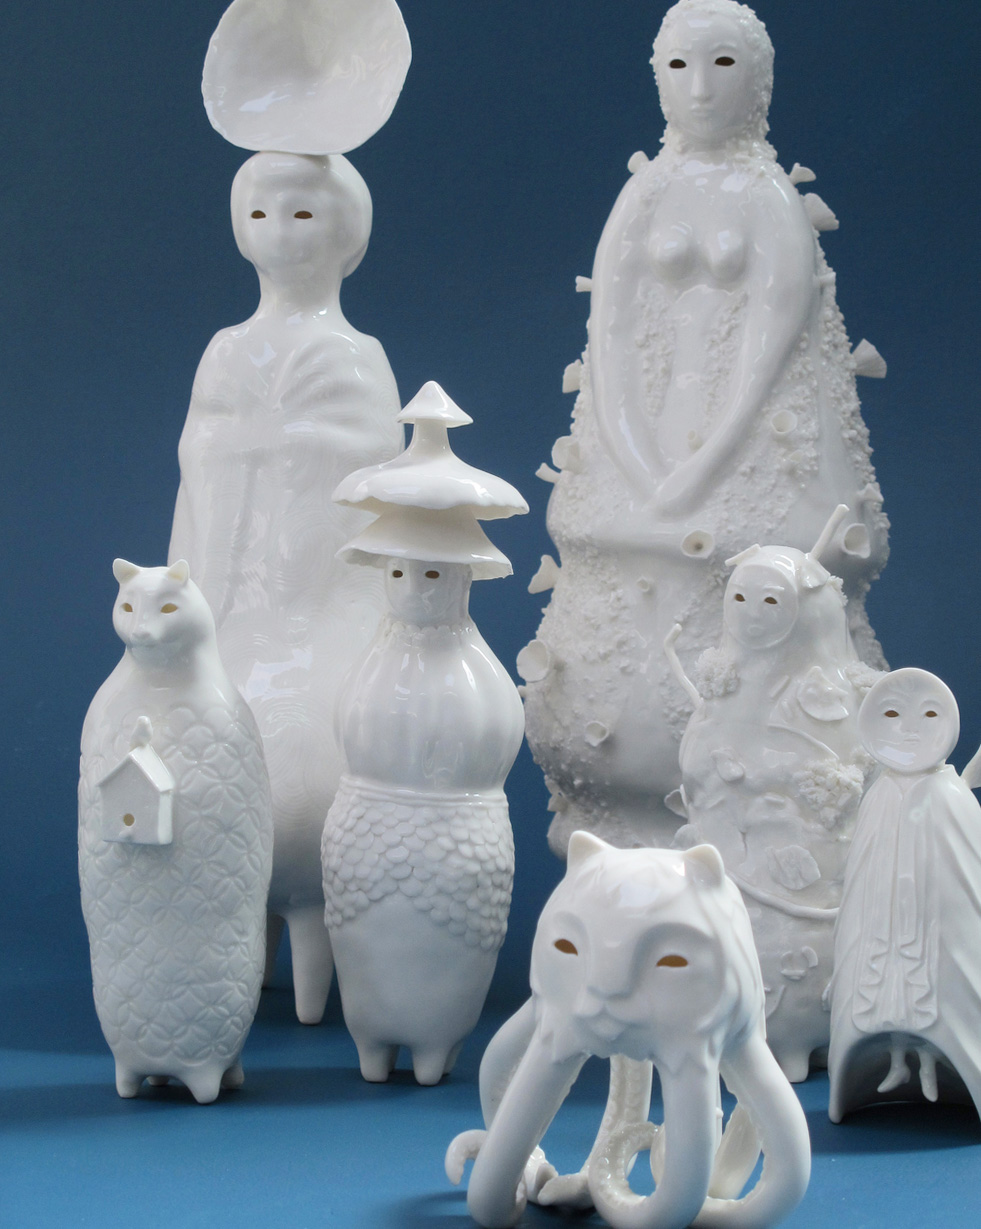 ceramic-artist-animals-mythical-sophie-woodrow